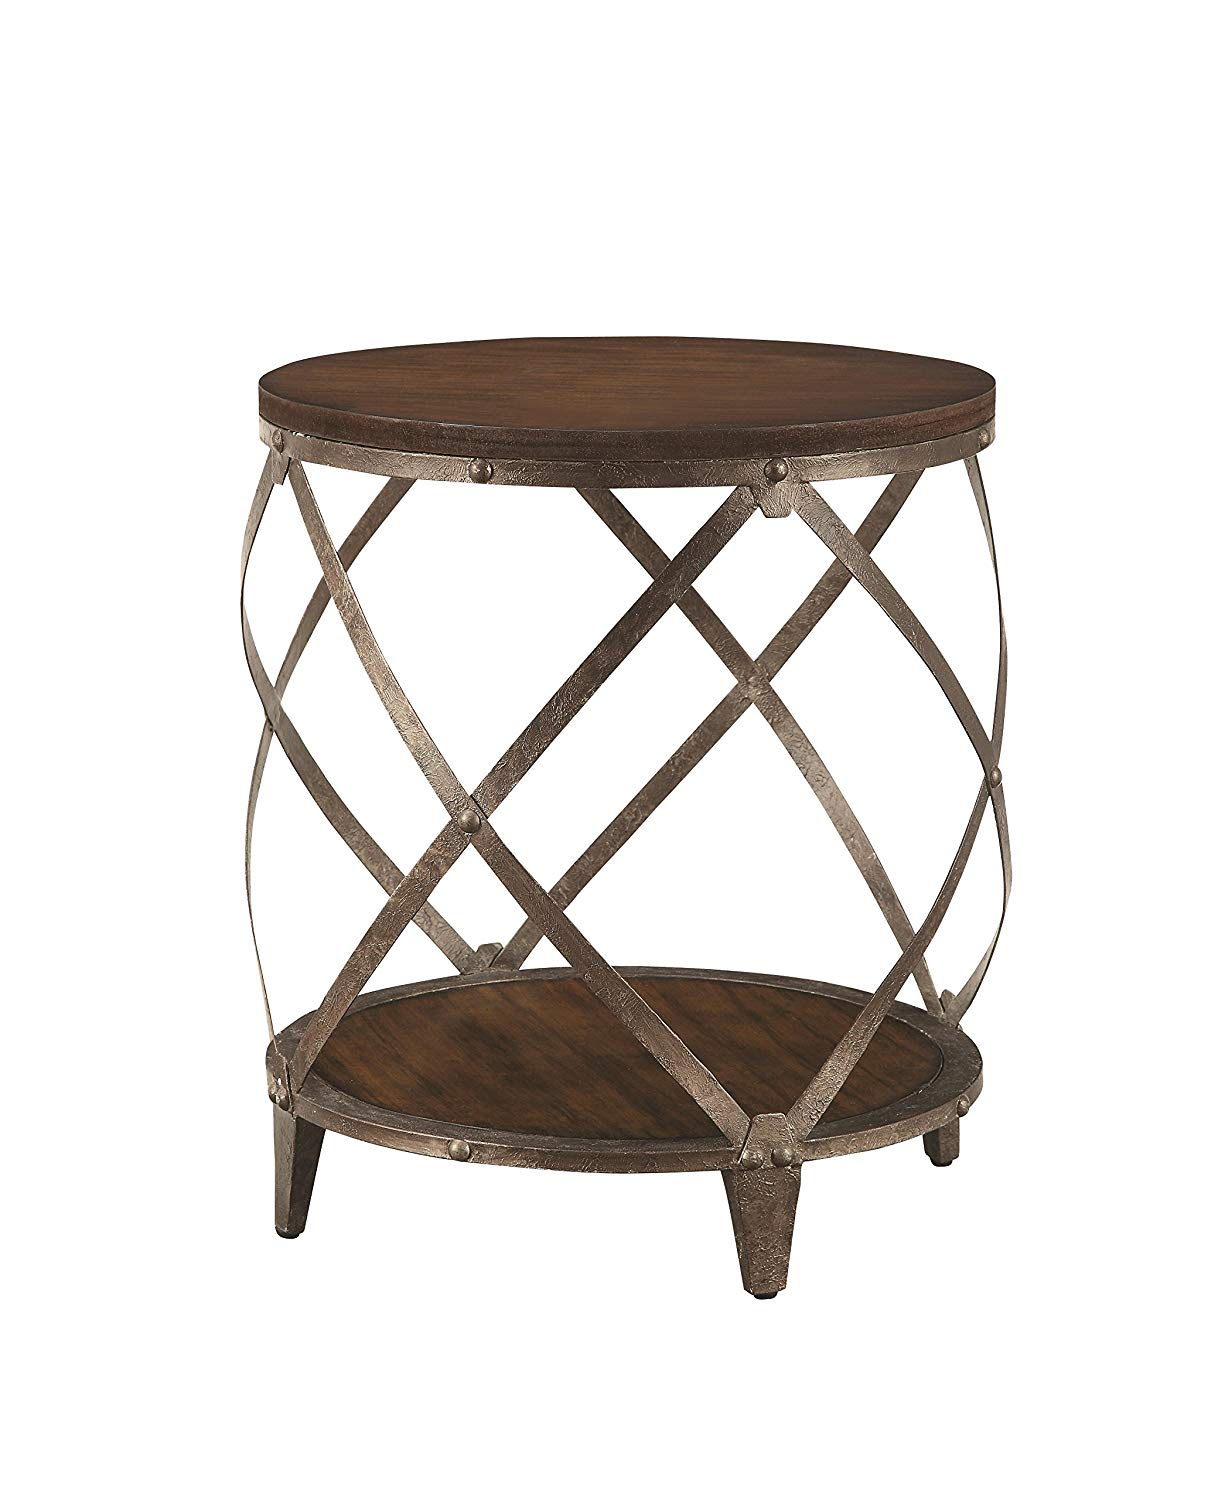 metal accent table with drum shape brown kitchen dining threshold wood top ships lantern pendant light old lamp tables pottery barn office desk extra tall console black room and